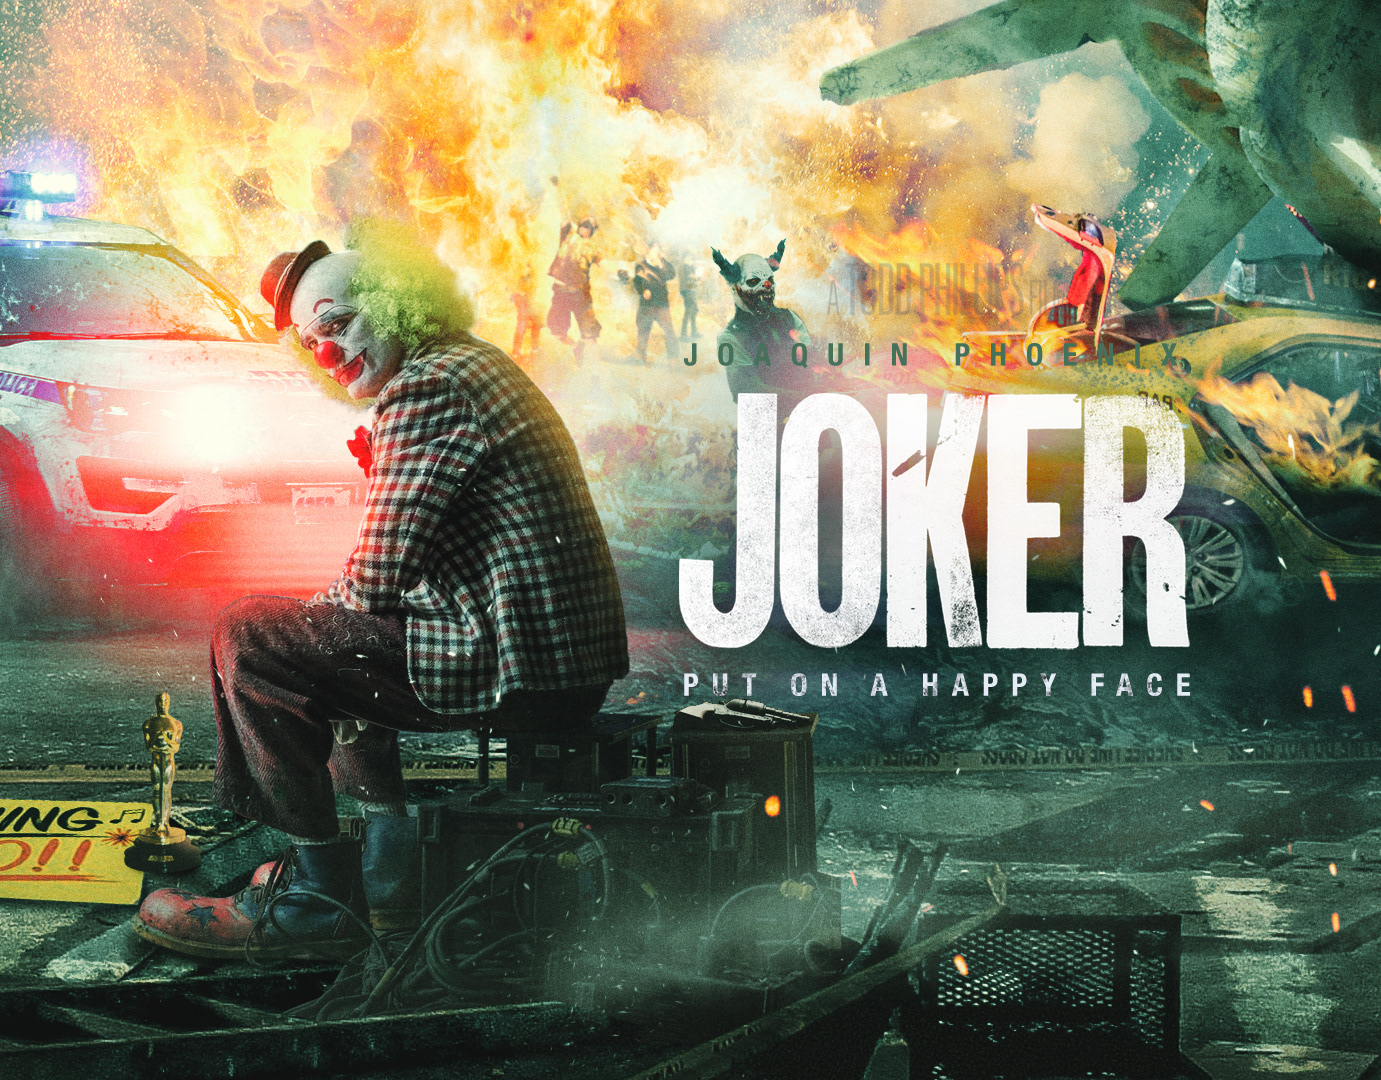 Joker Movie Poster Projects Photos Videos Logos Illustrations And Branding On Behance